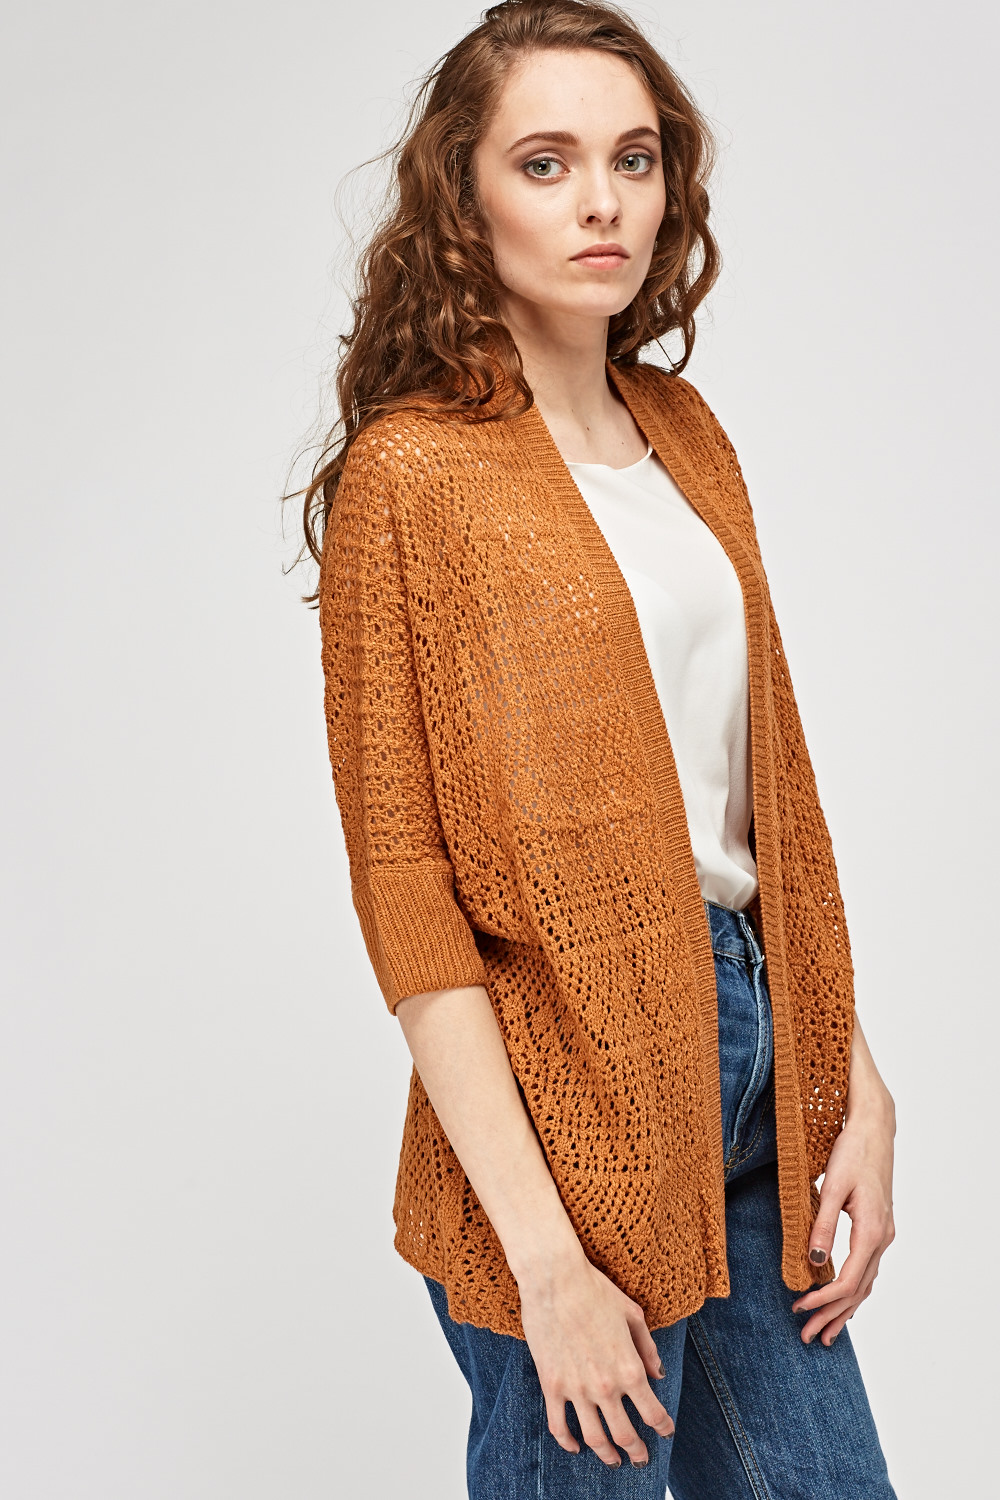 Loose Knit Jumper with Pocket - from Miss Sugar UK